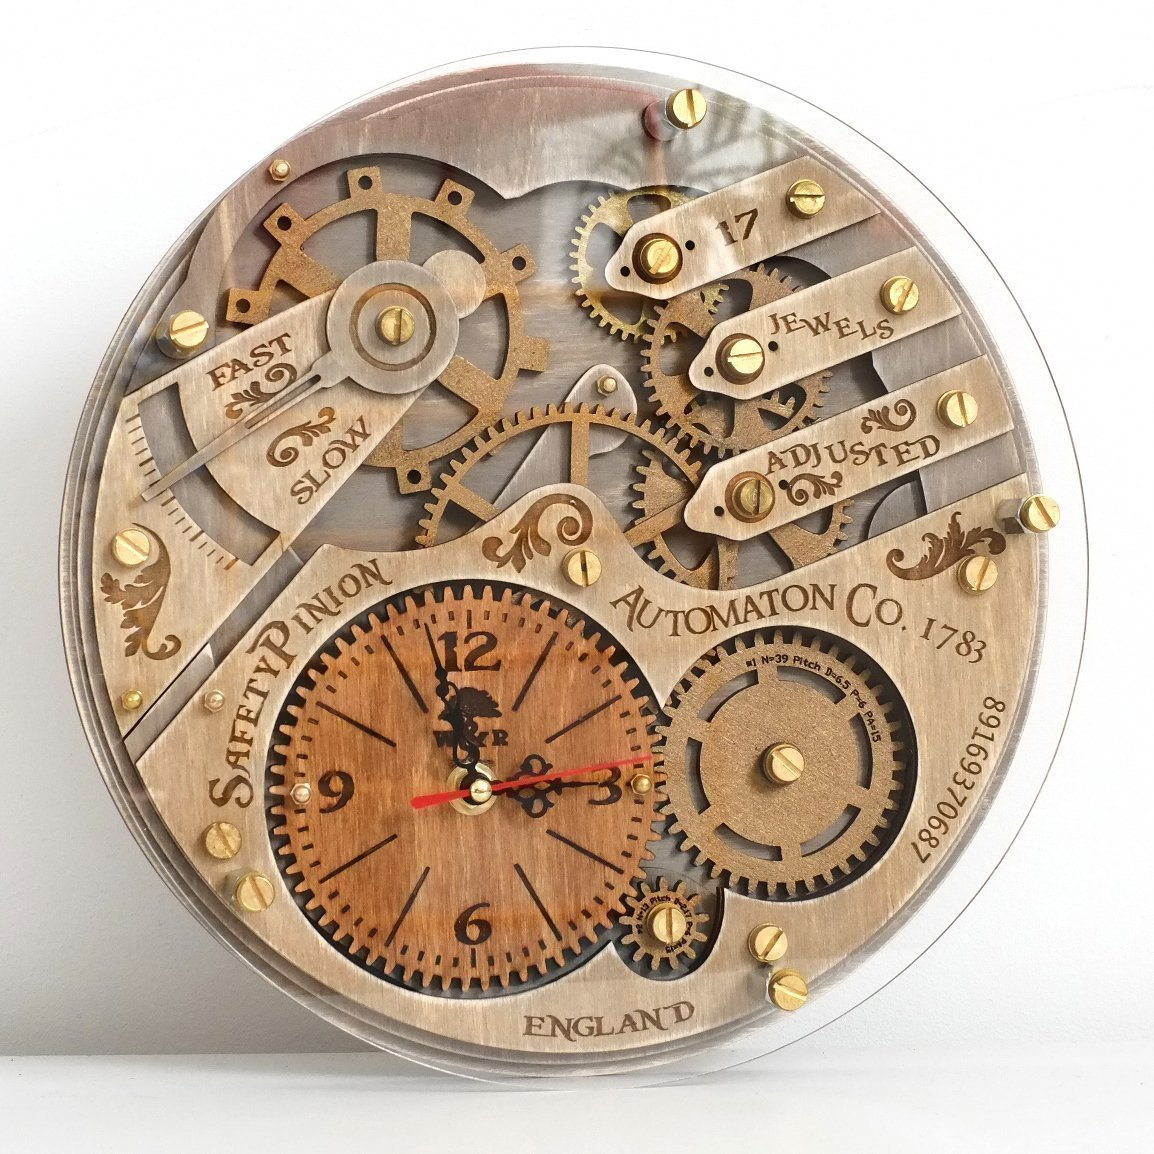 WoodandRoot Automation Clocksu2013Captivating Our Interest In Time